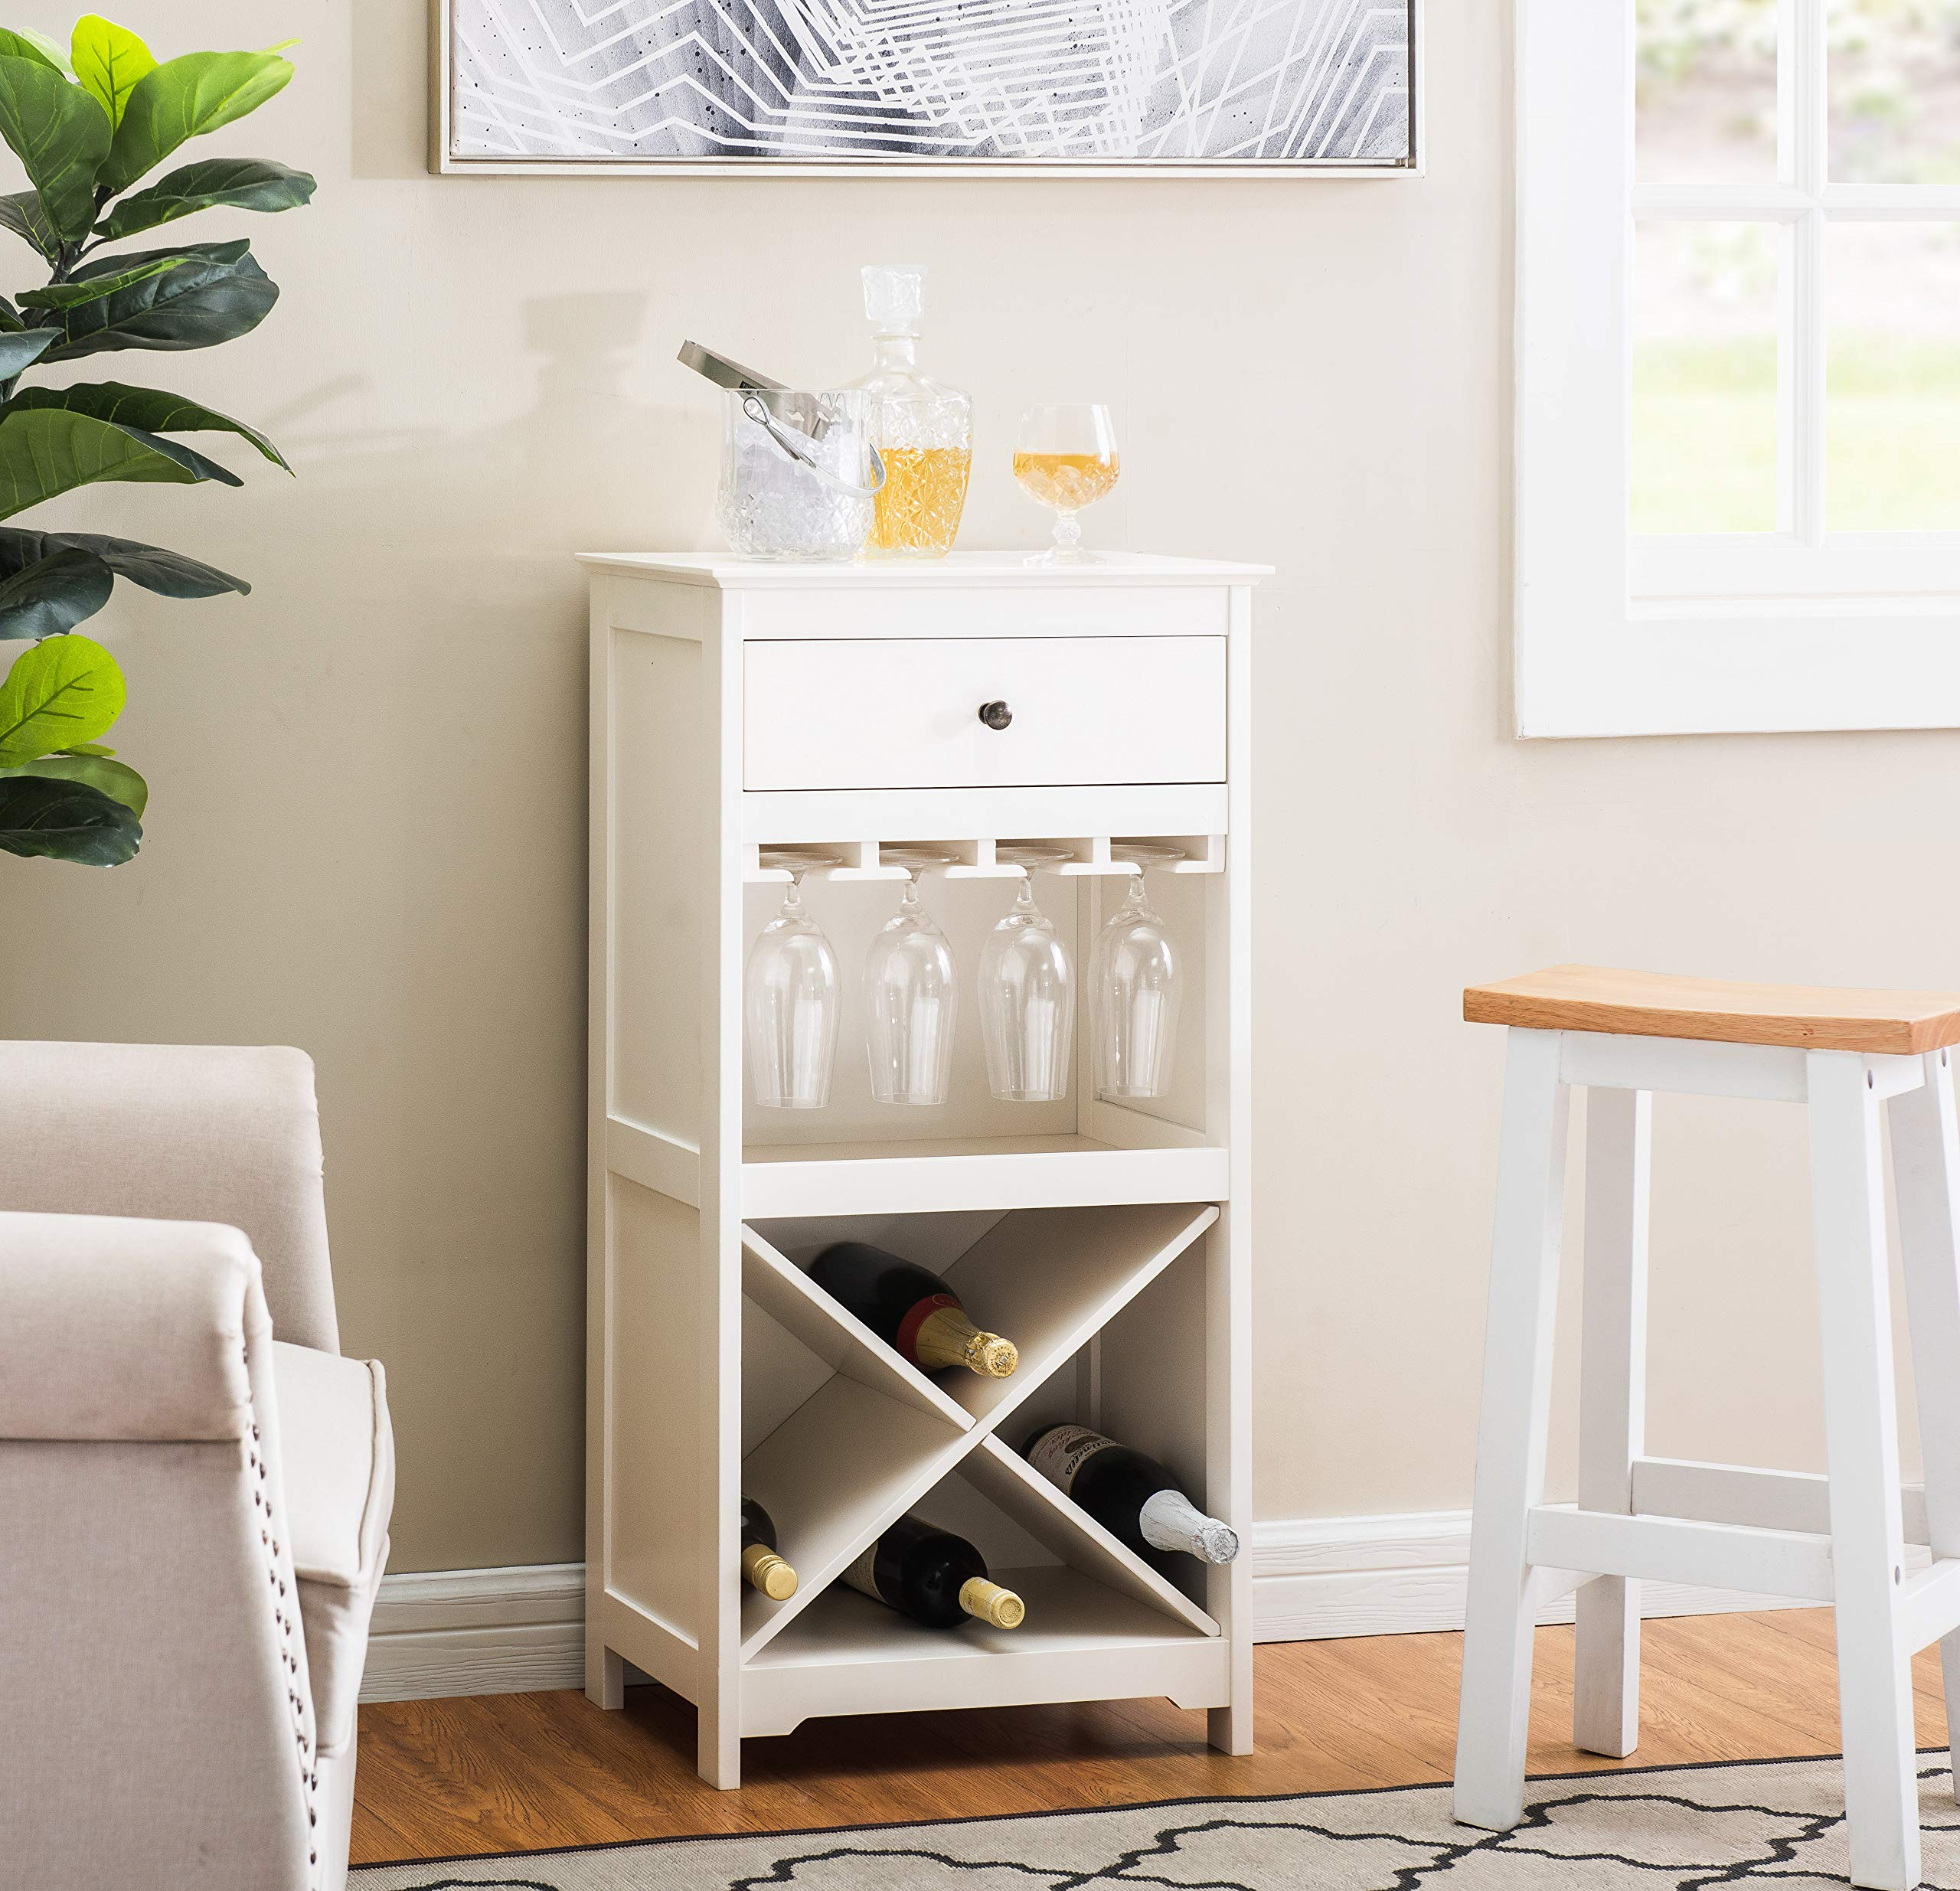 2L Lifestyle B21400002-W Paxton Cabinet, White by 2L Lifestyle